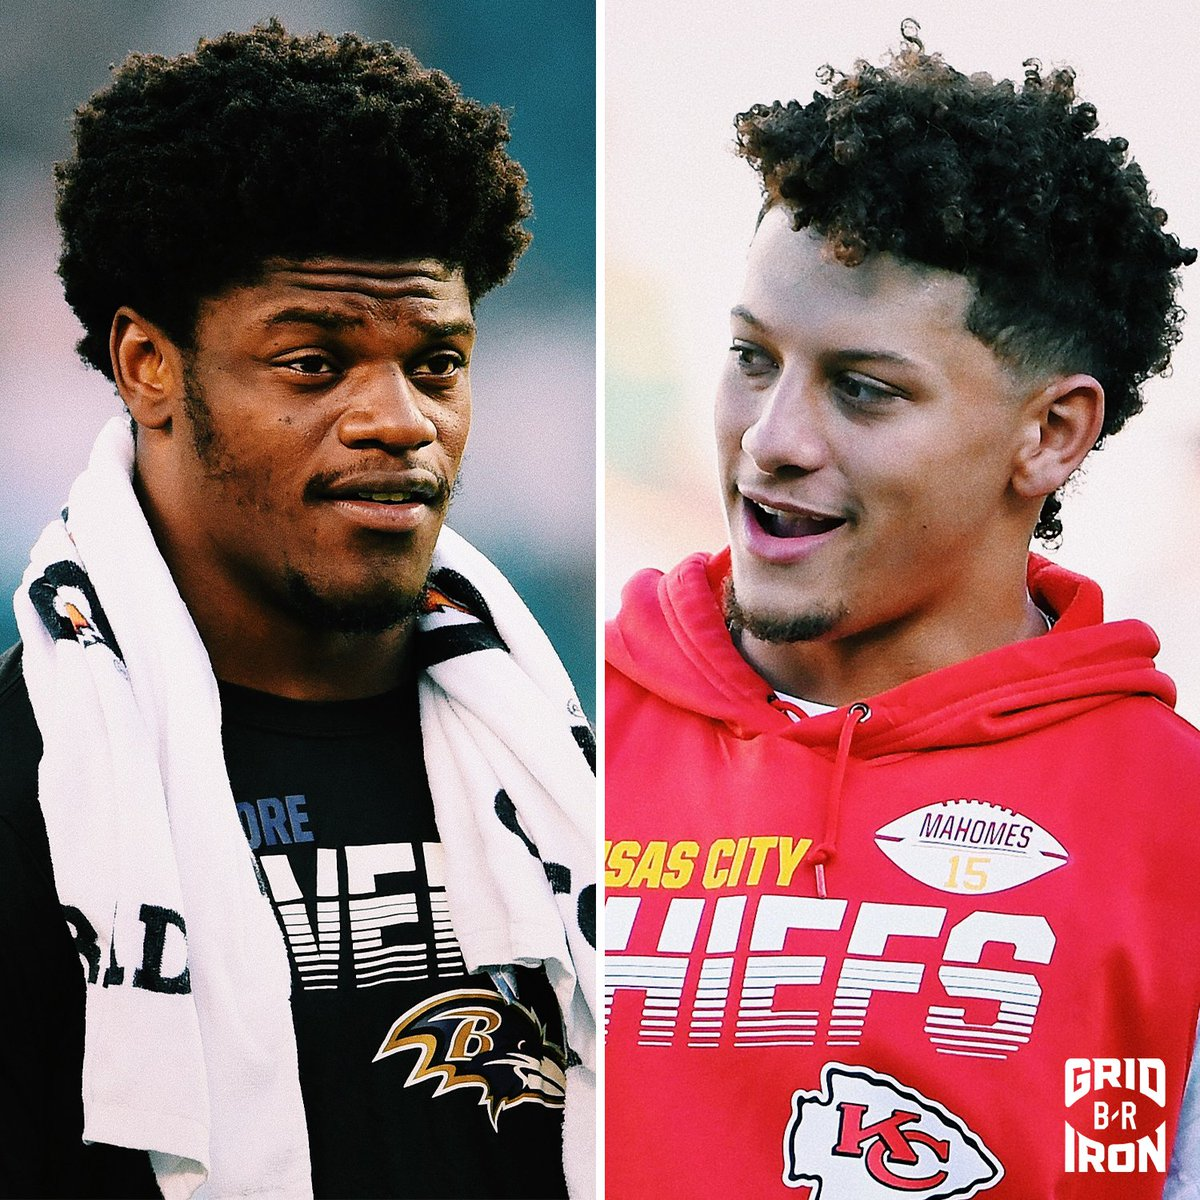 @BleacherReport's photo on Mahomes